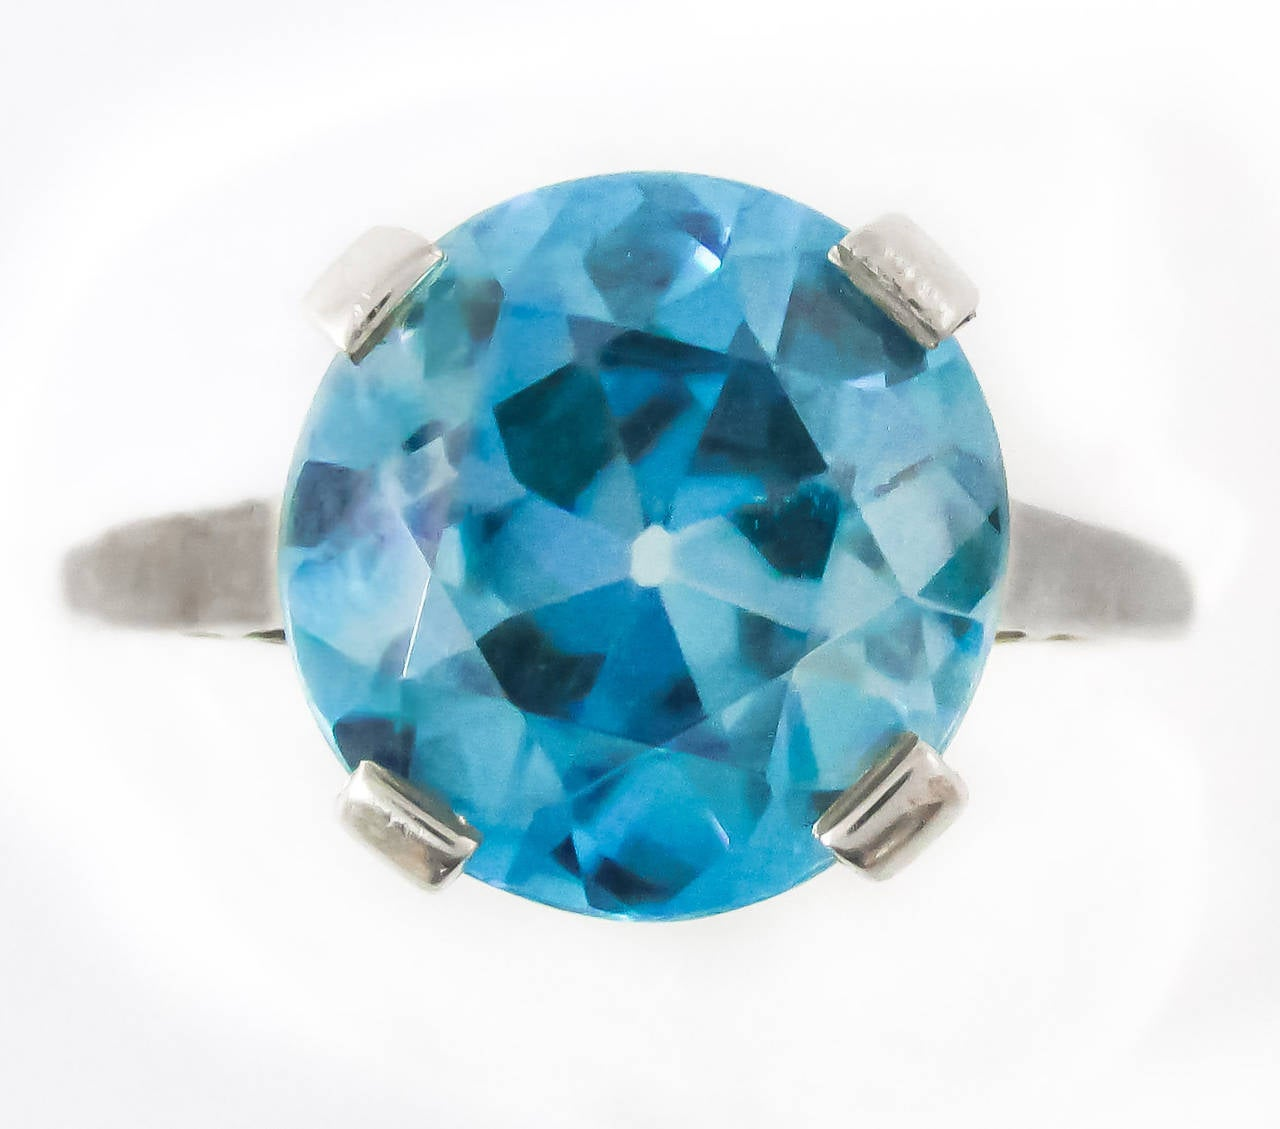 Retro 8 Carat Intense Blue Zircon Platinum Ring In Excellent Condition For Sale In New York, NY